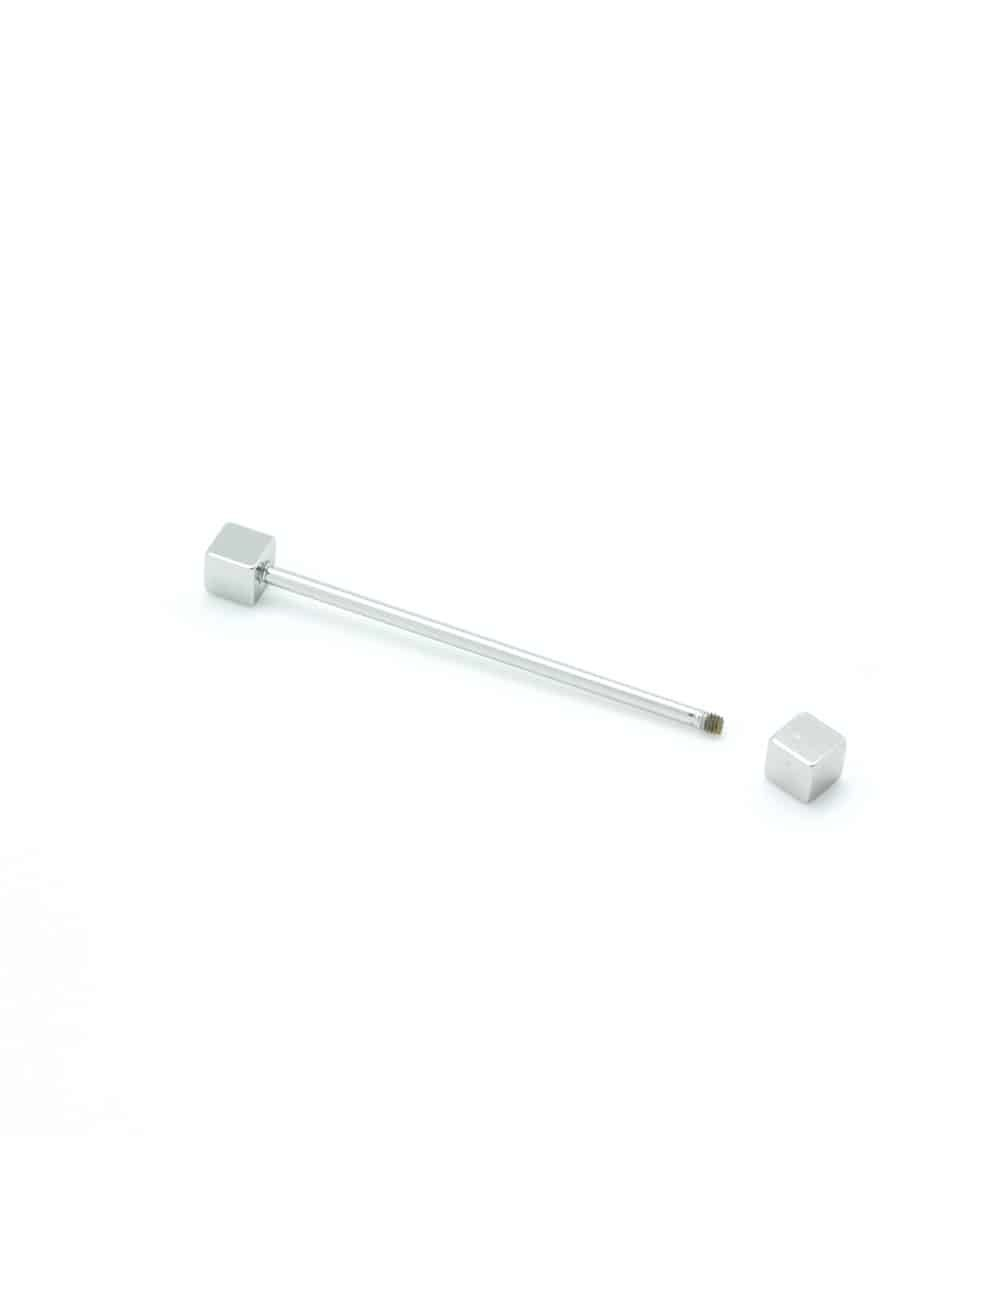 Silver Square Tip Collar Pin CLP2.1